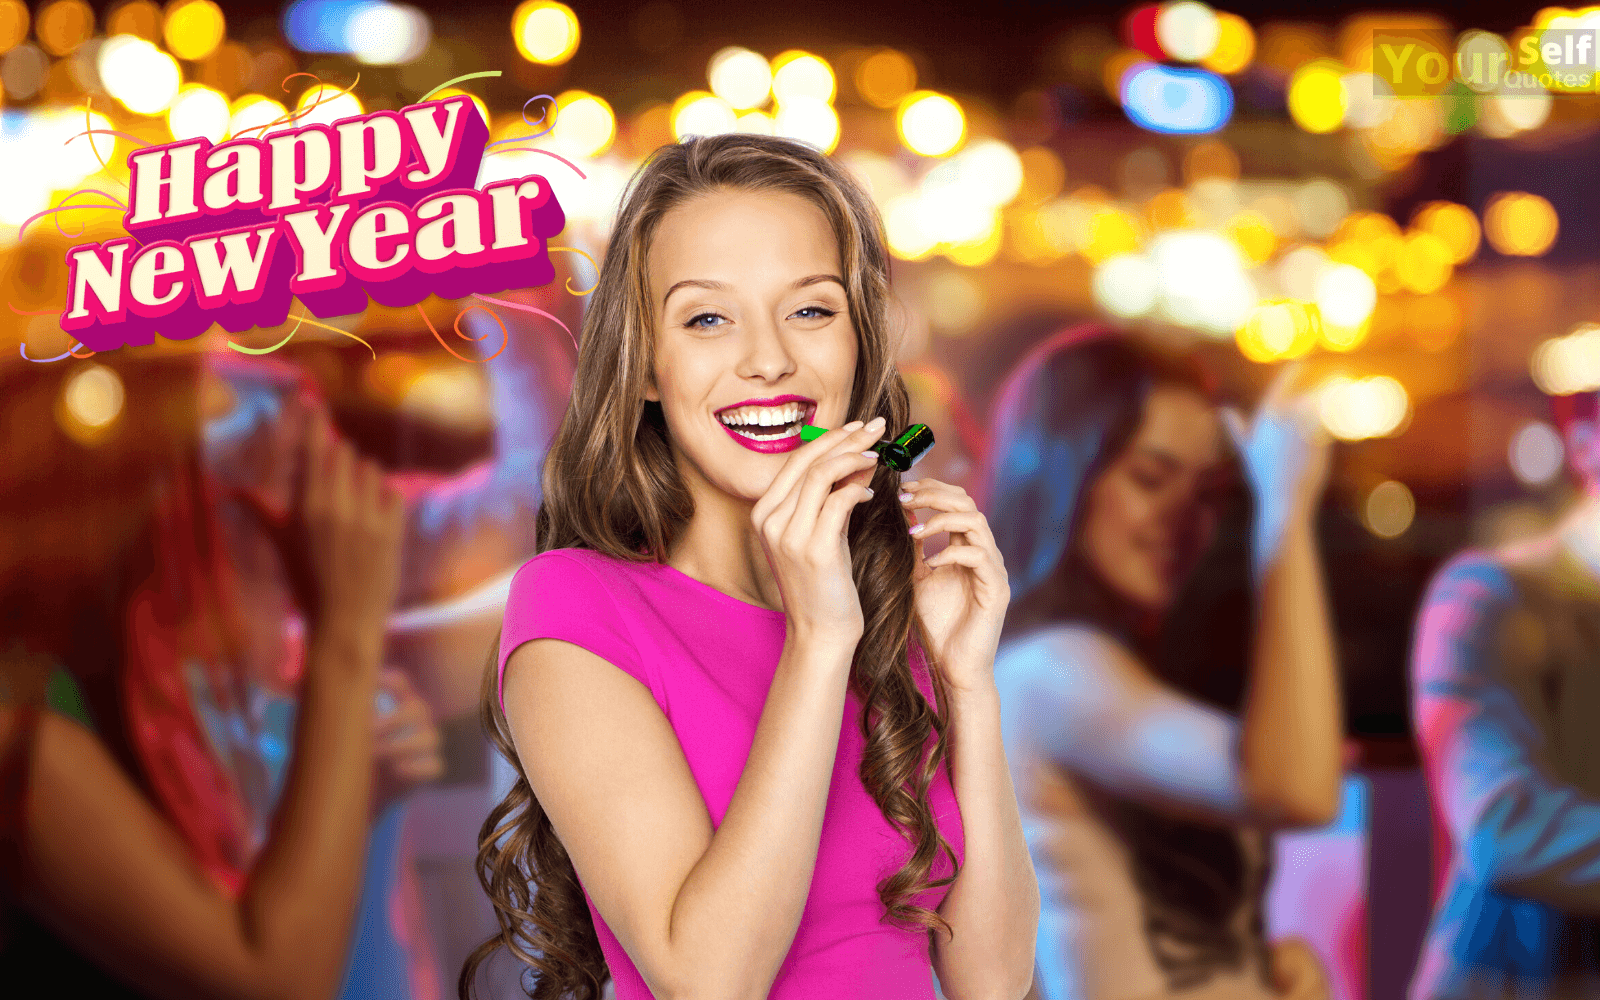 Beautiful Happy New Year Wallpapers HD